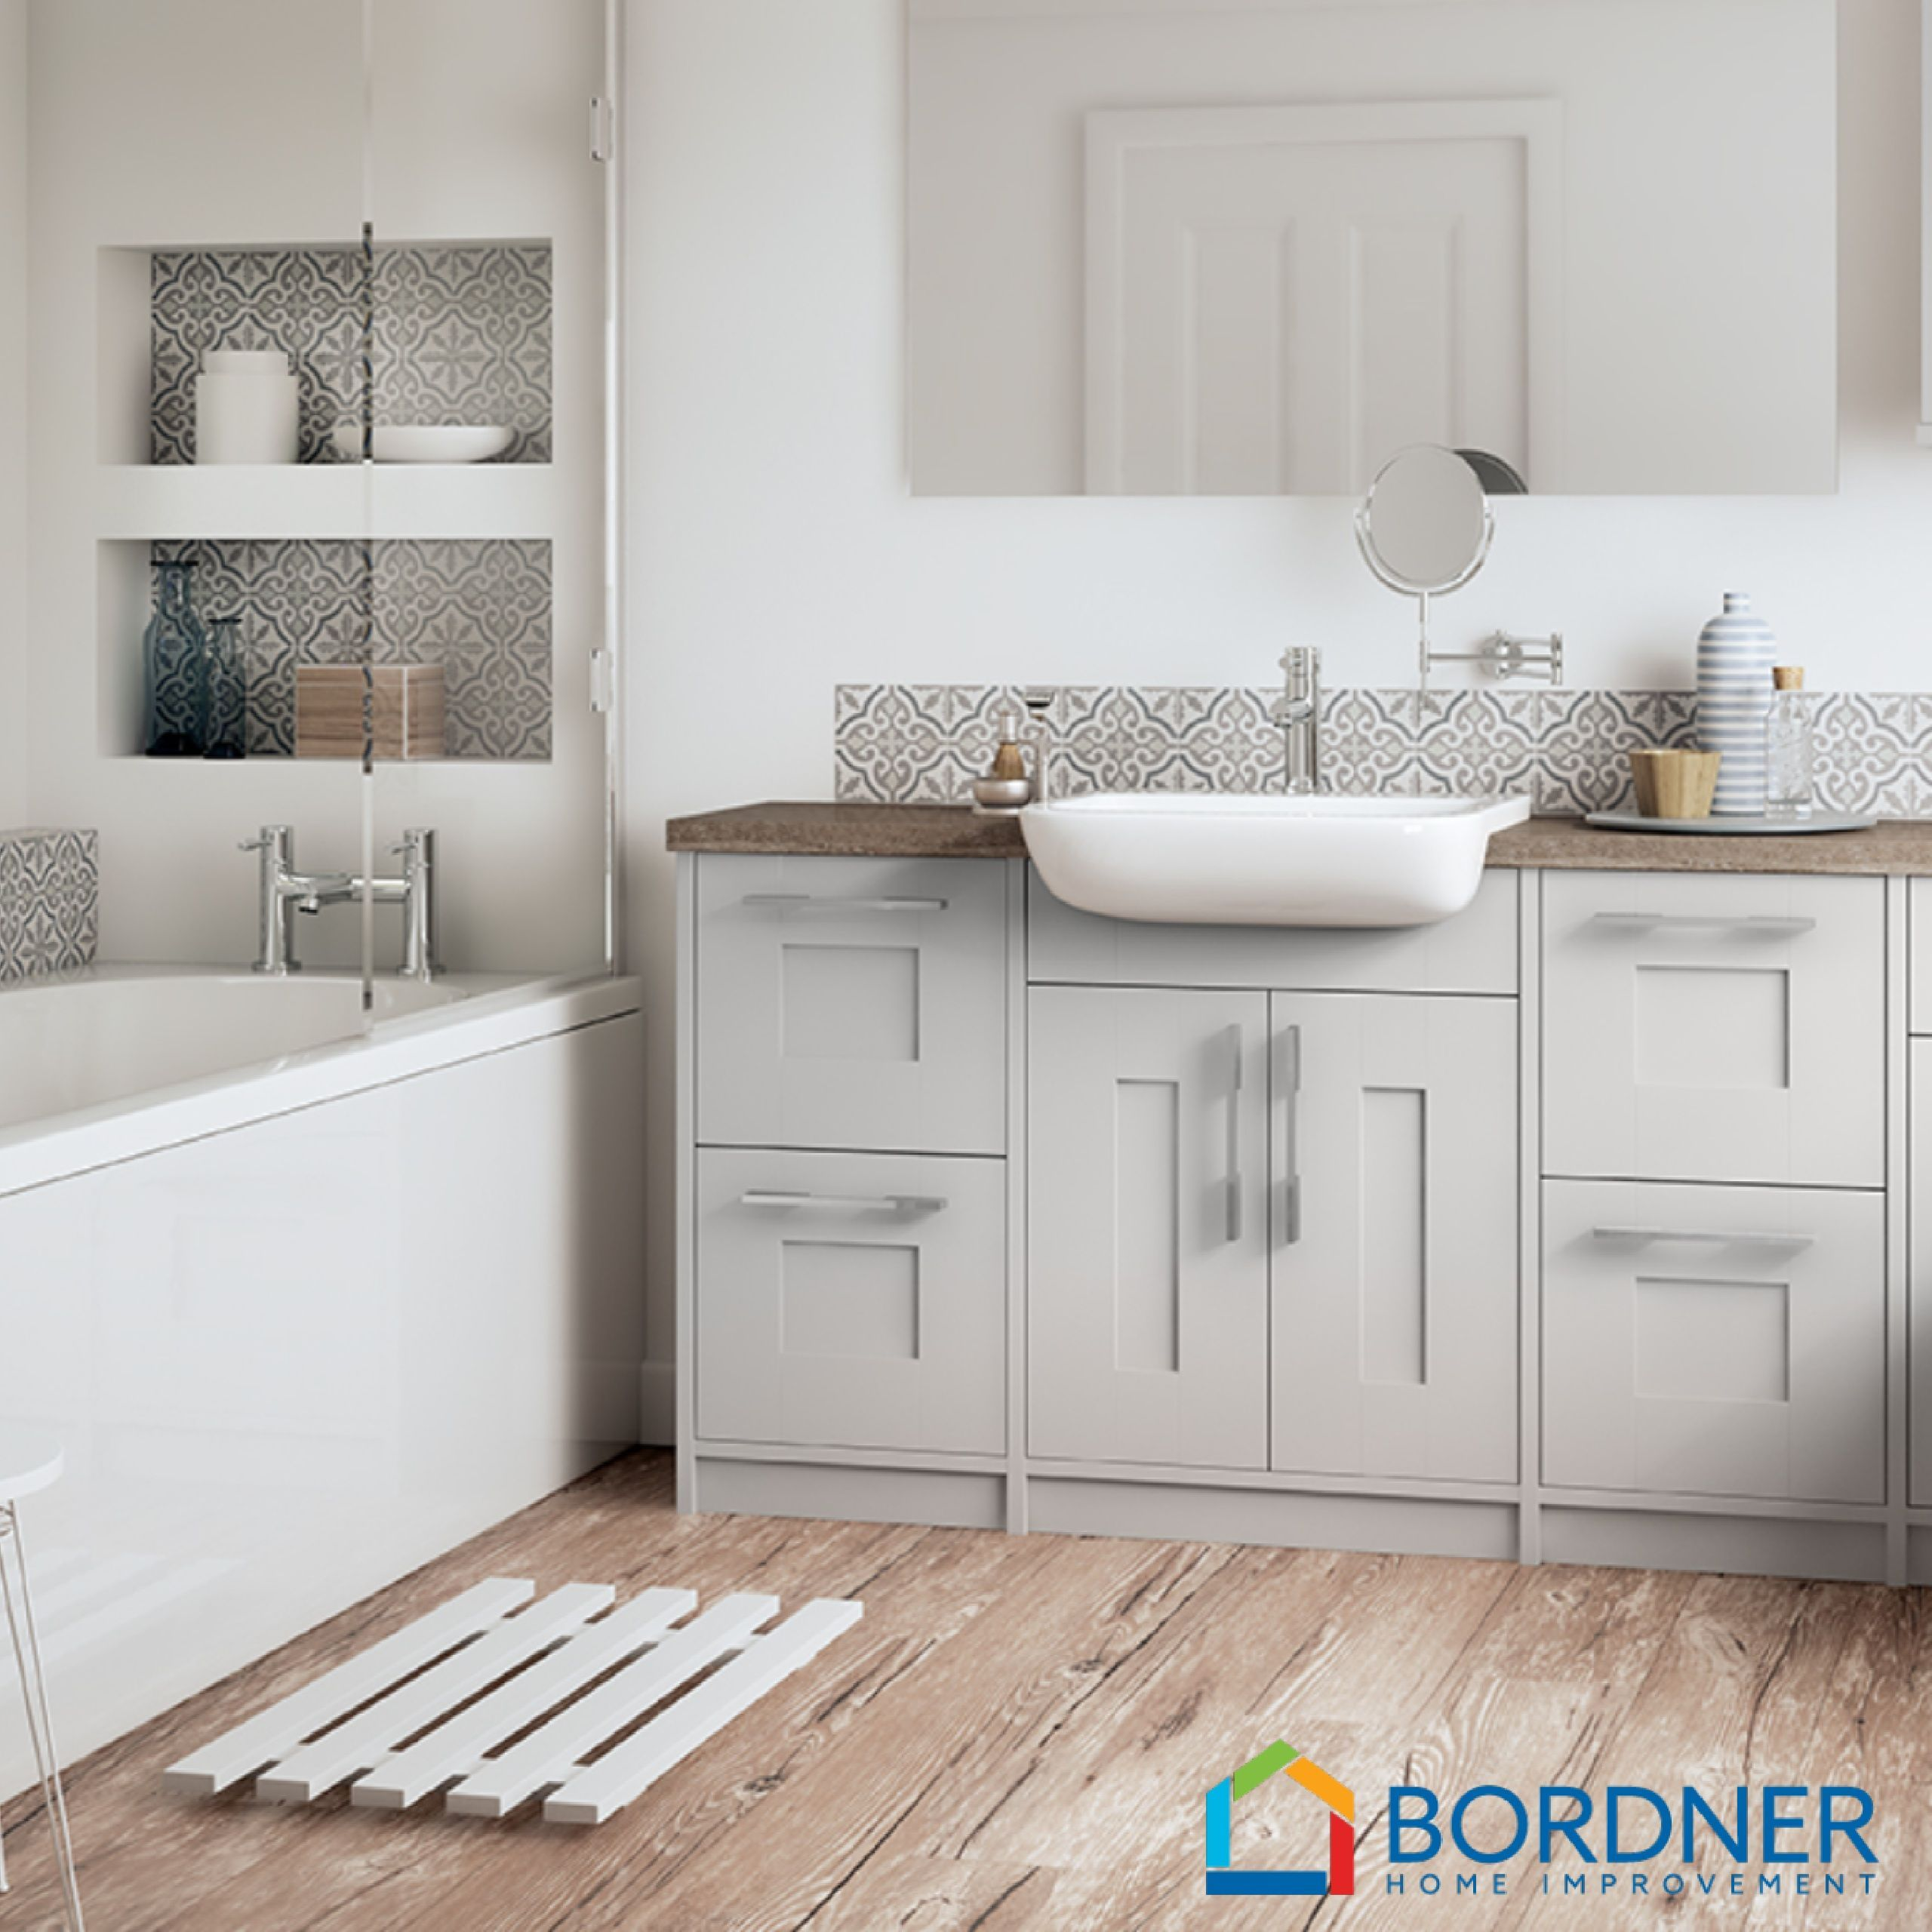 If you're searching for bathroom remodeling experts in the ...